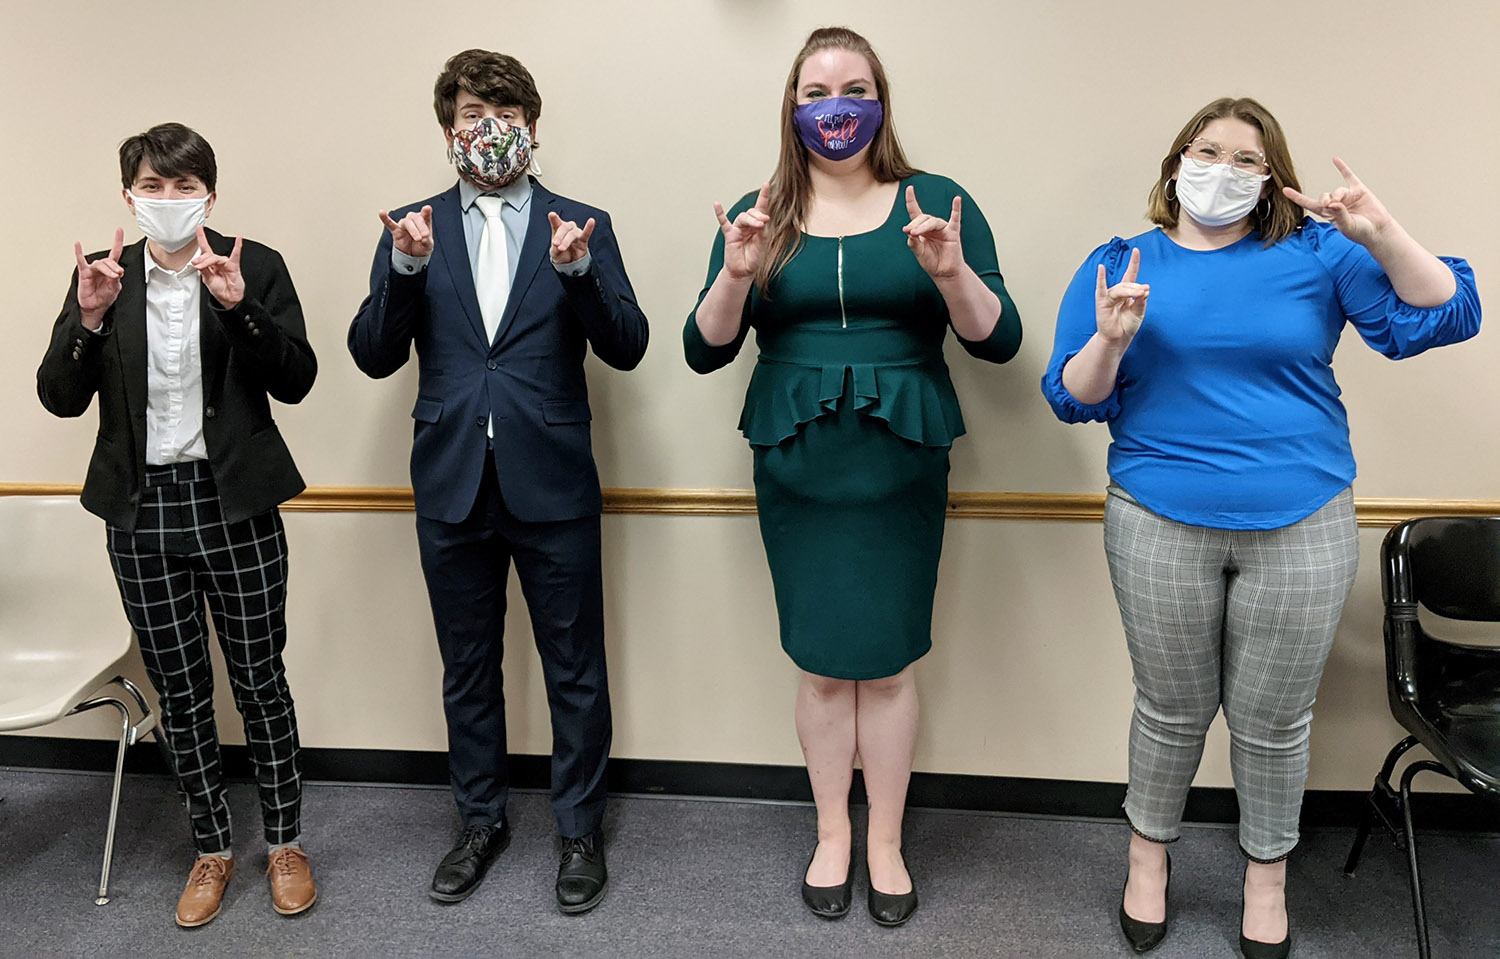 From left, UNK Forensics Team members Avery Dutton, Justin Machard, Jordan Delahunty and Darienne Blair will compete in the American Forensics Association National Speech Tournament. Dylan Hicks also qualified for the event. (Courtesy photo)